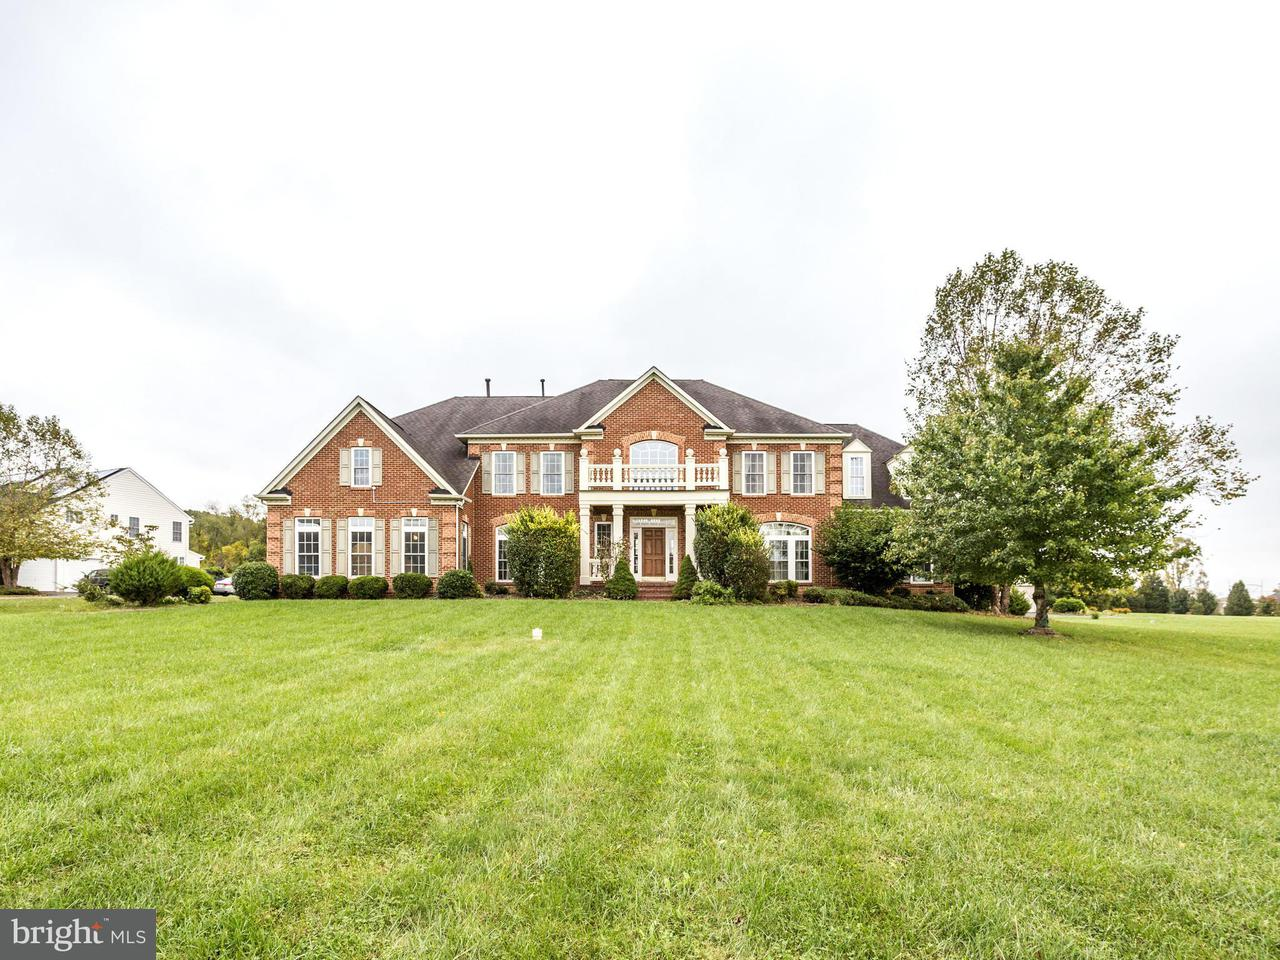 Single Family Home for Sale at 21311 DENIT ESTATES Drive 21311 DENIT ESTATES Drive Brookeville, Maryland 20833 United States